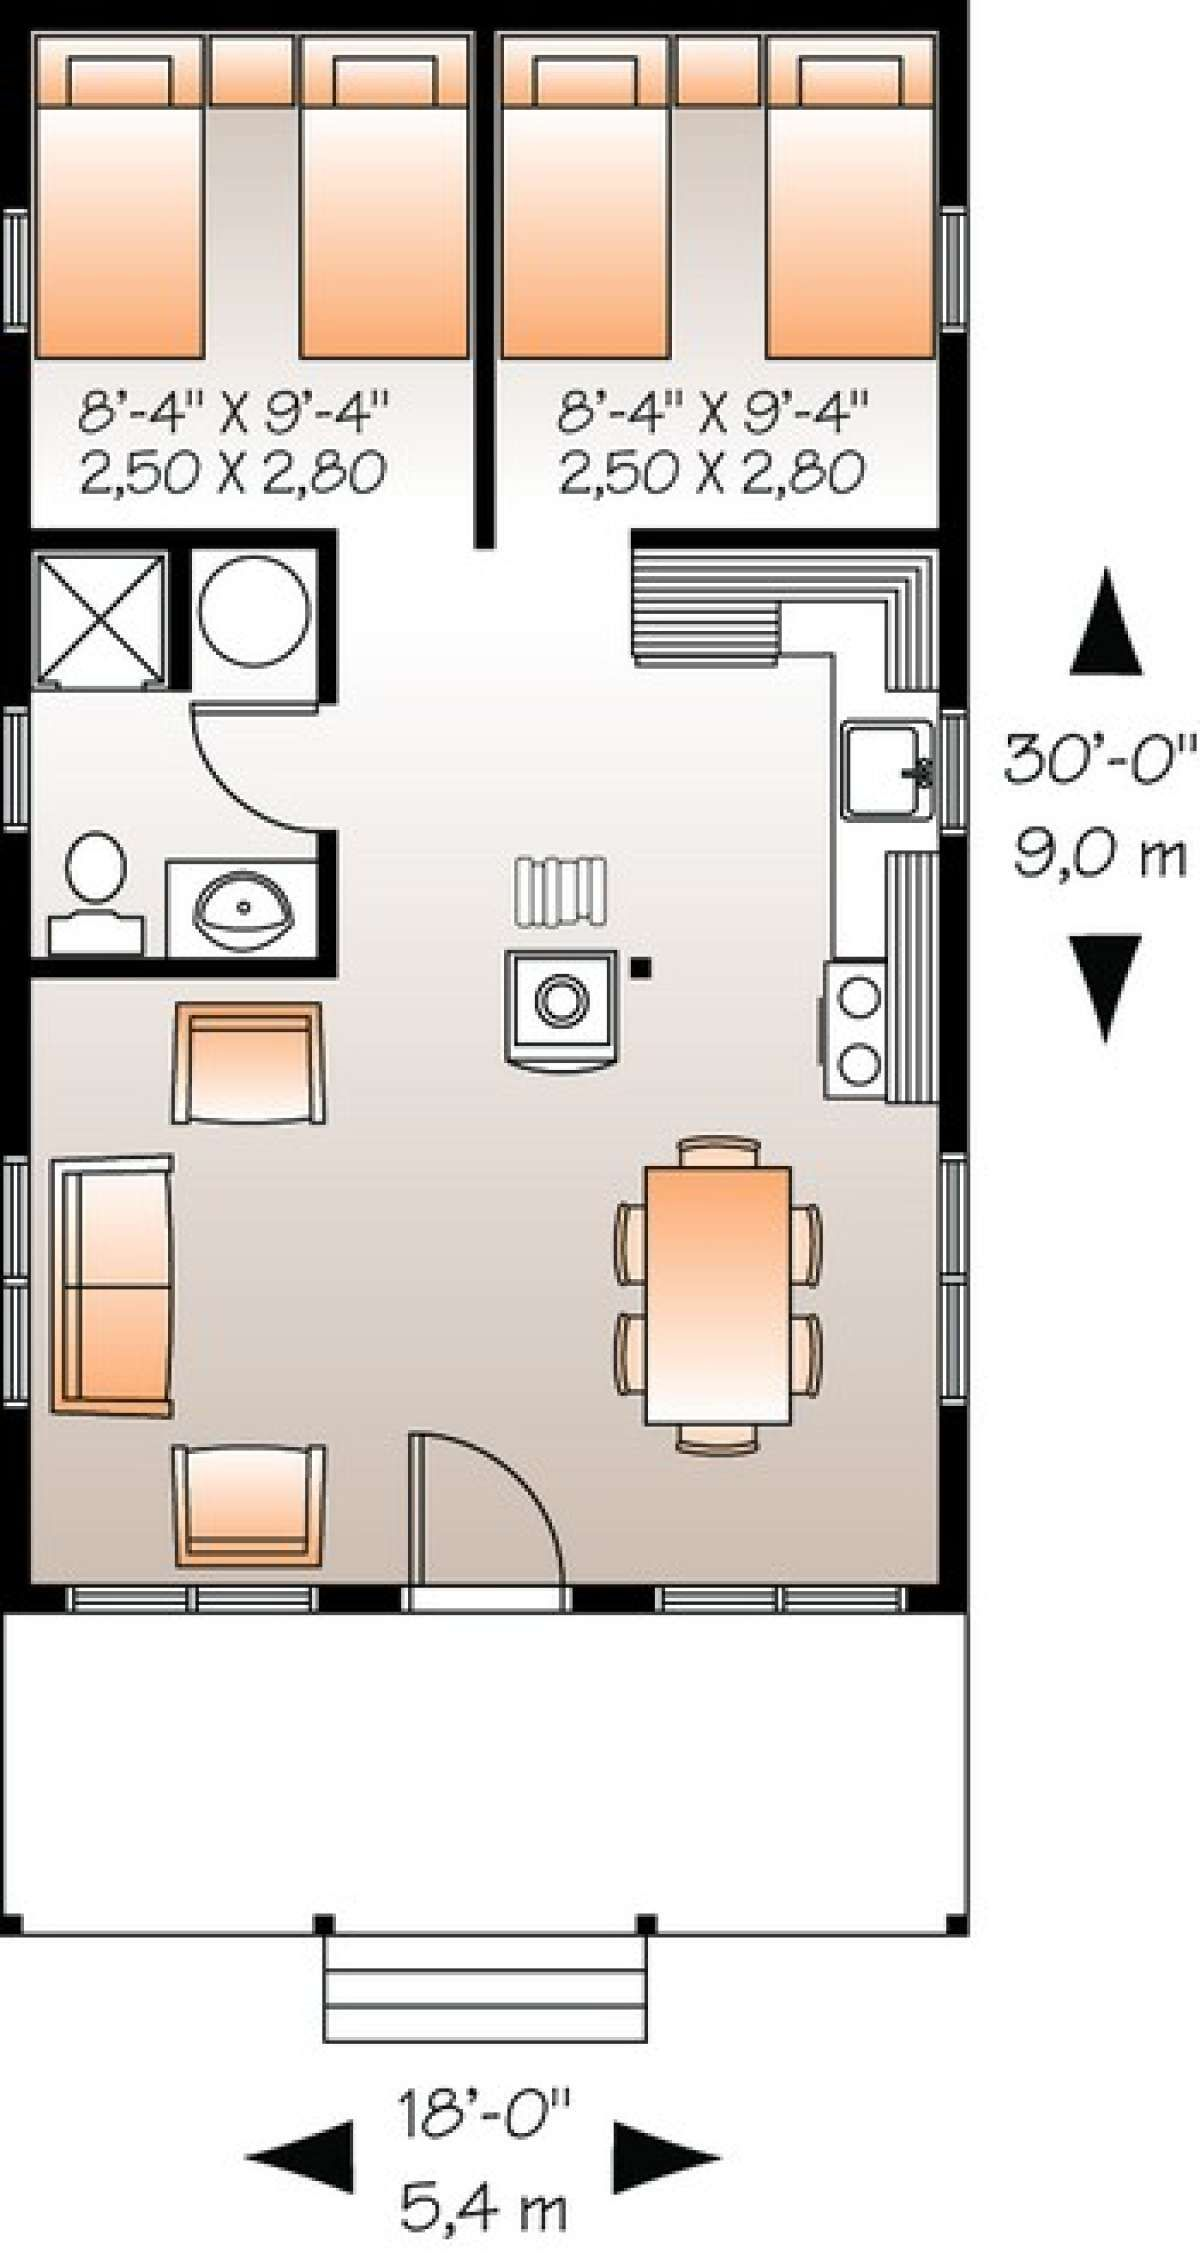 House Plan 03400178 Vacation Plan 540 Square Feet, 2